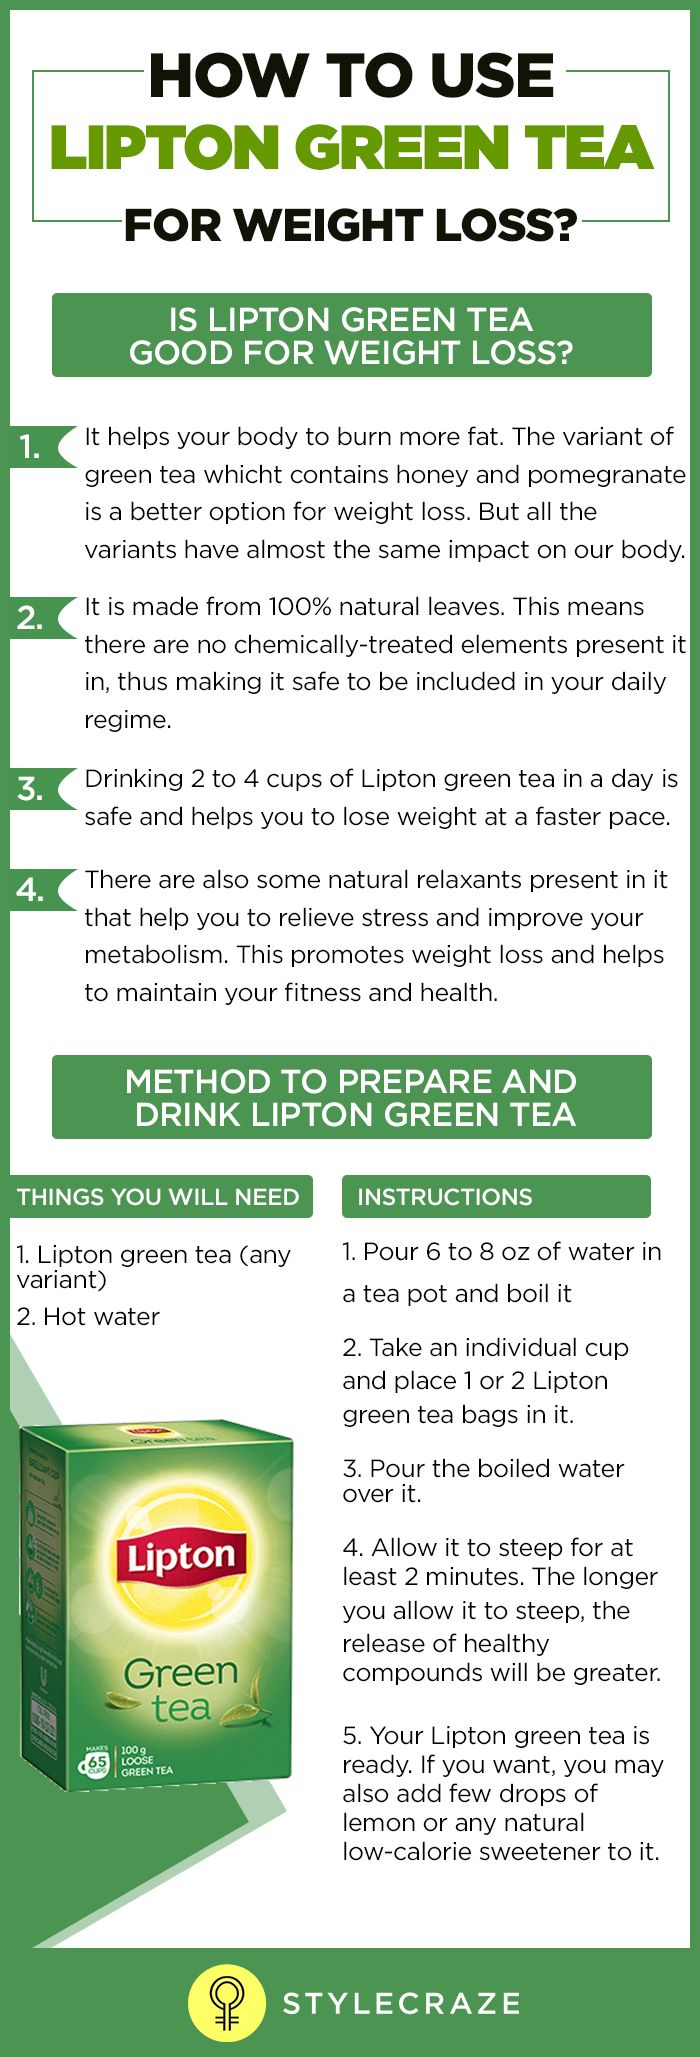 How To Use Water With Lemon For Weight Loss Ehow - Green tea is a healthy drink which refreshes your body and mind it has various